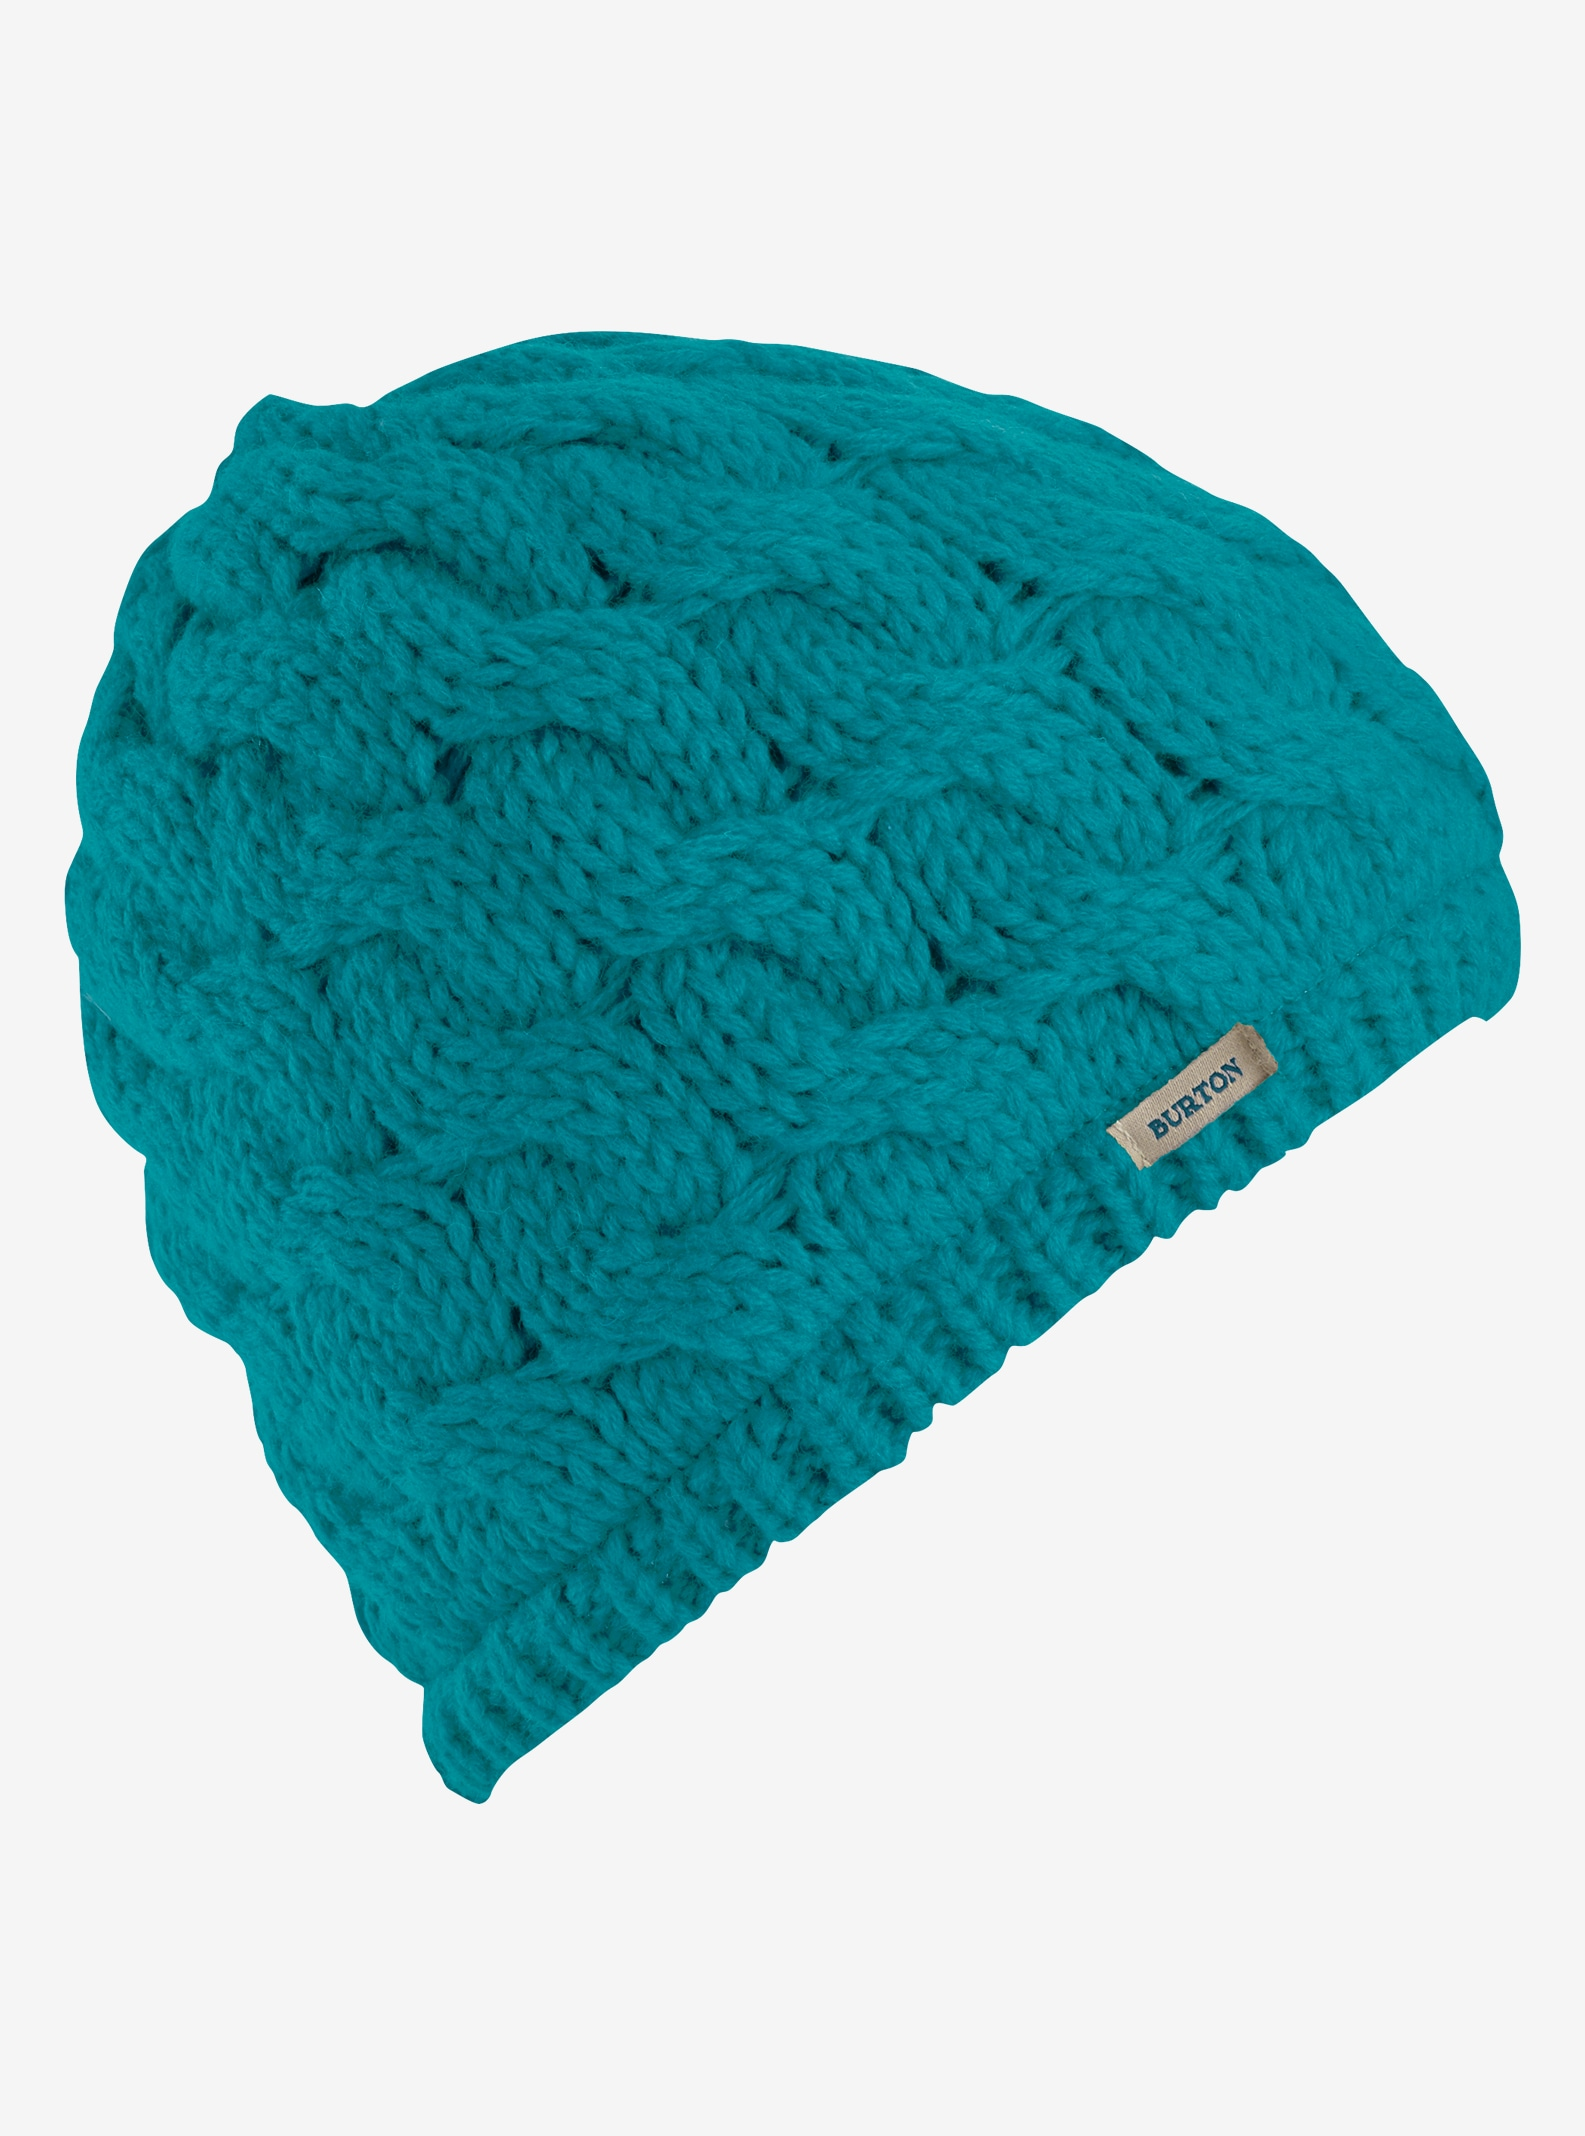 Women's Burton Birdie Beanie shown in Larkspur